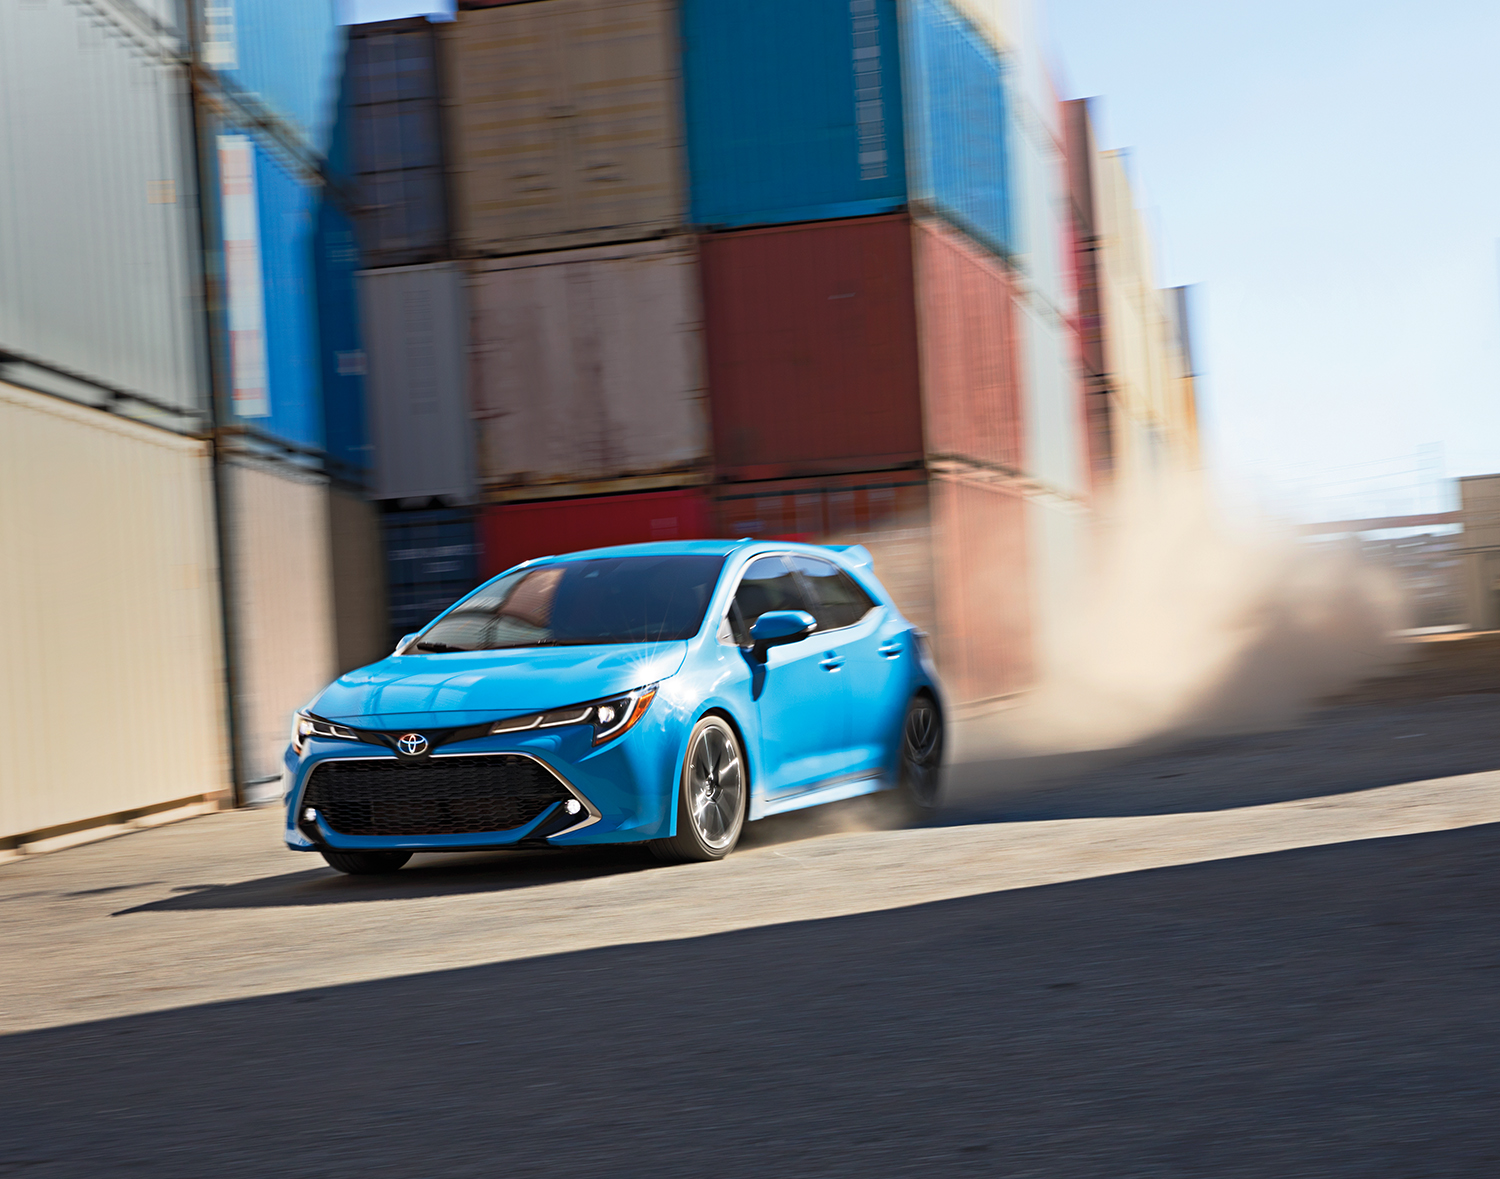 blue 2019 Corolla Hatchback kicking up dust in a storage area